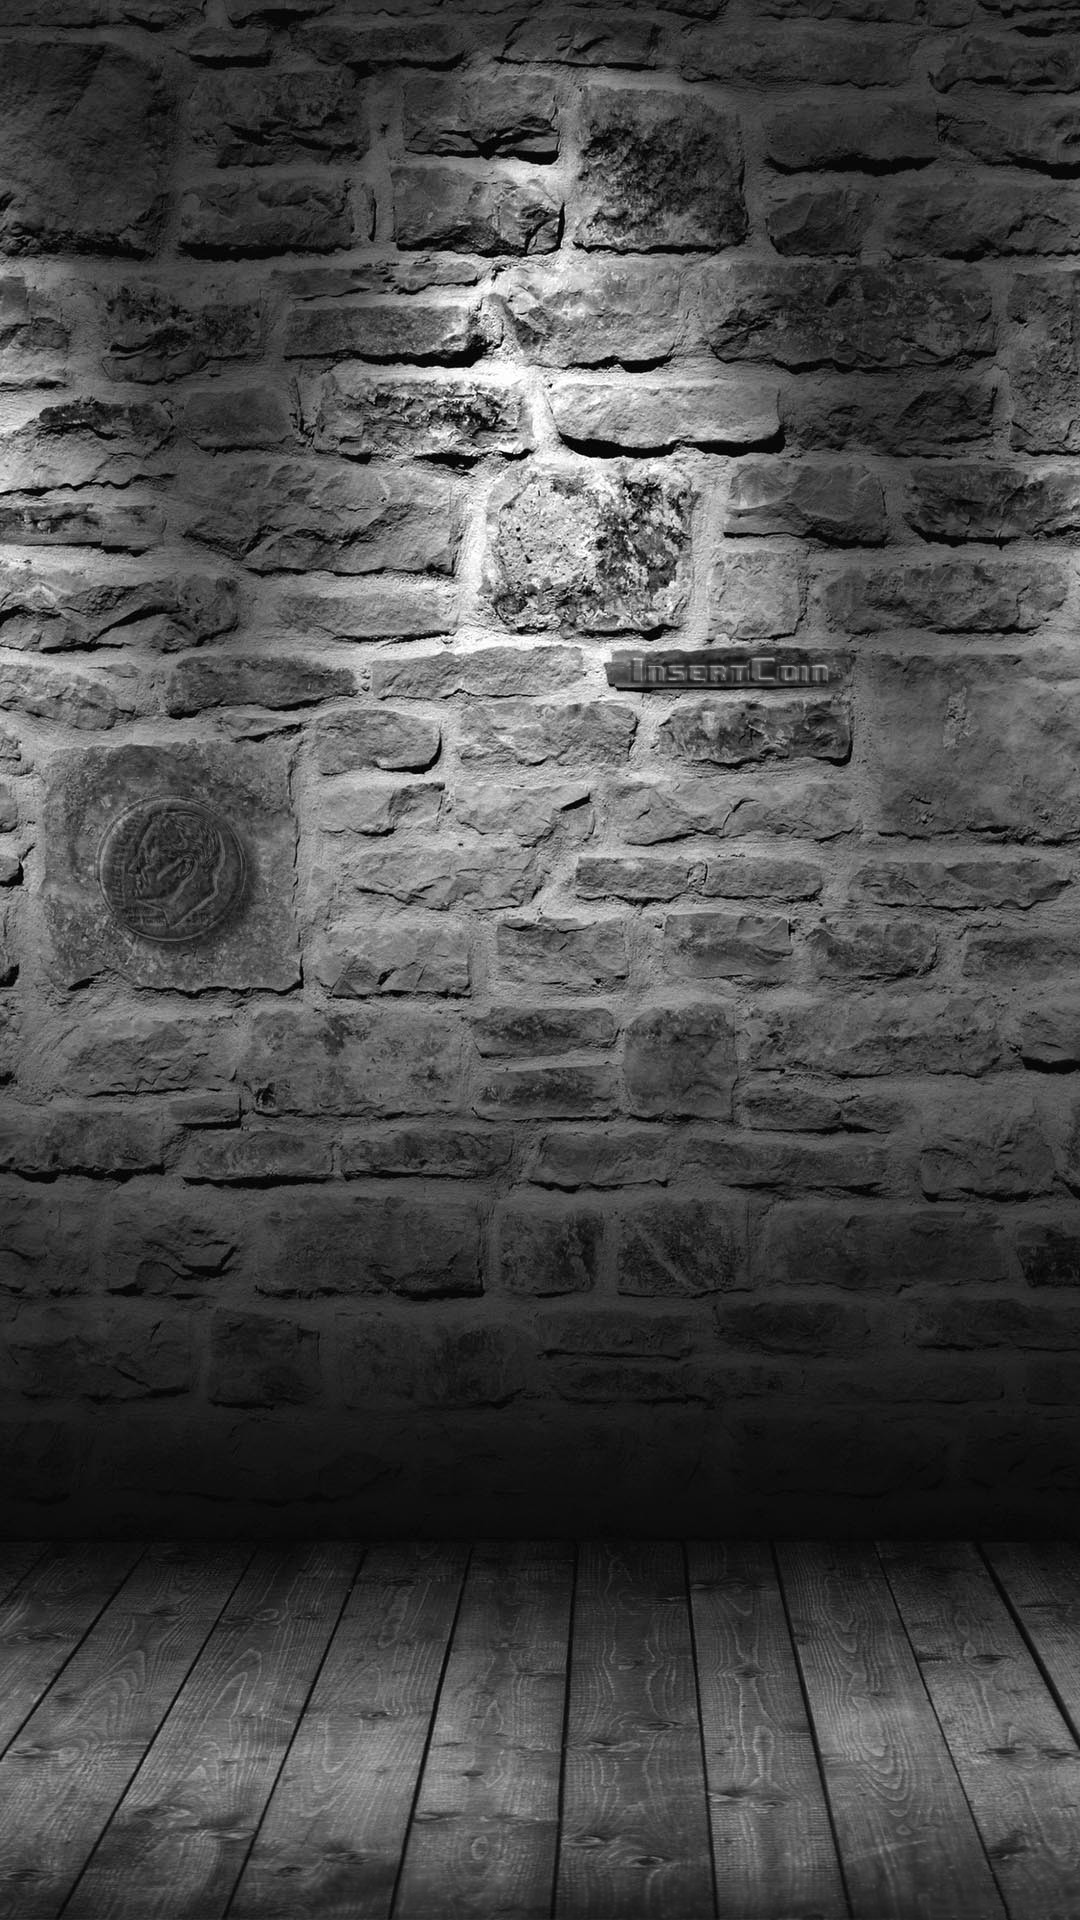 Grey Brick Wall HTC Insert Coin Android Wallpaper …